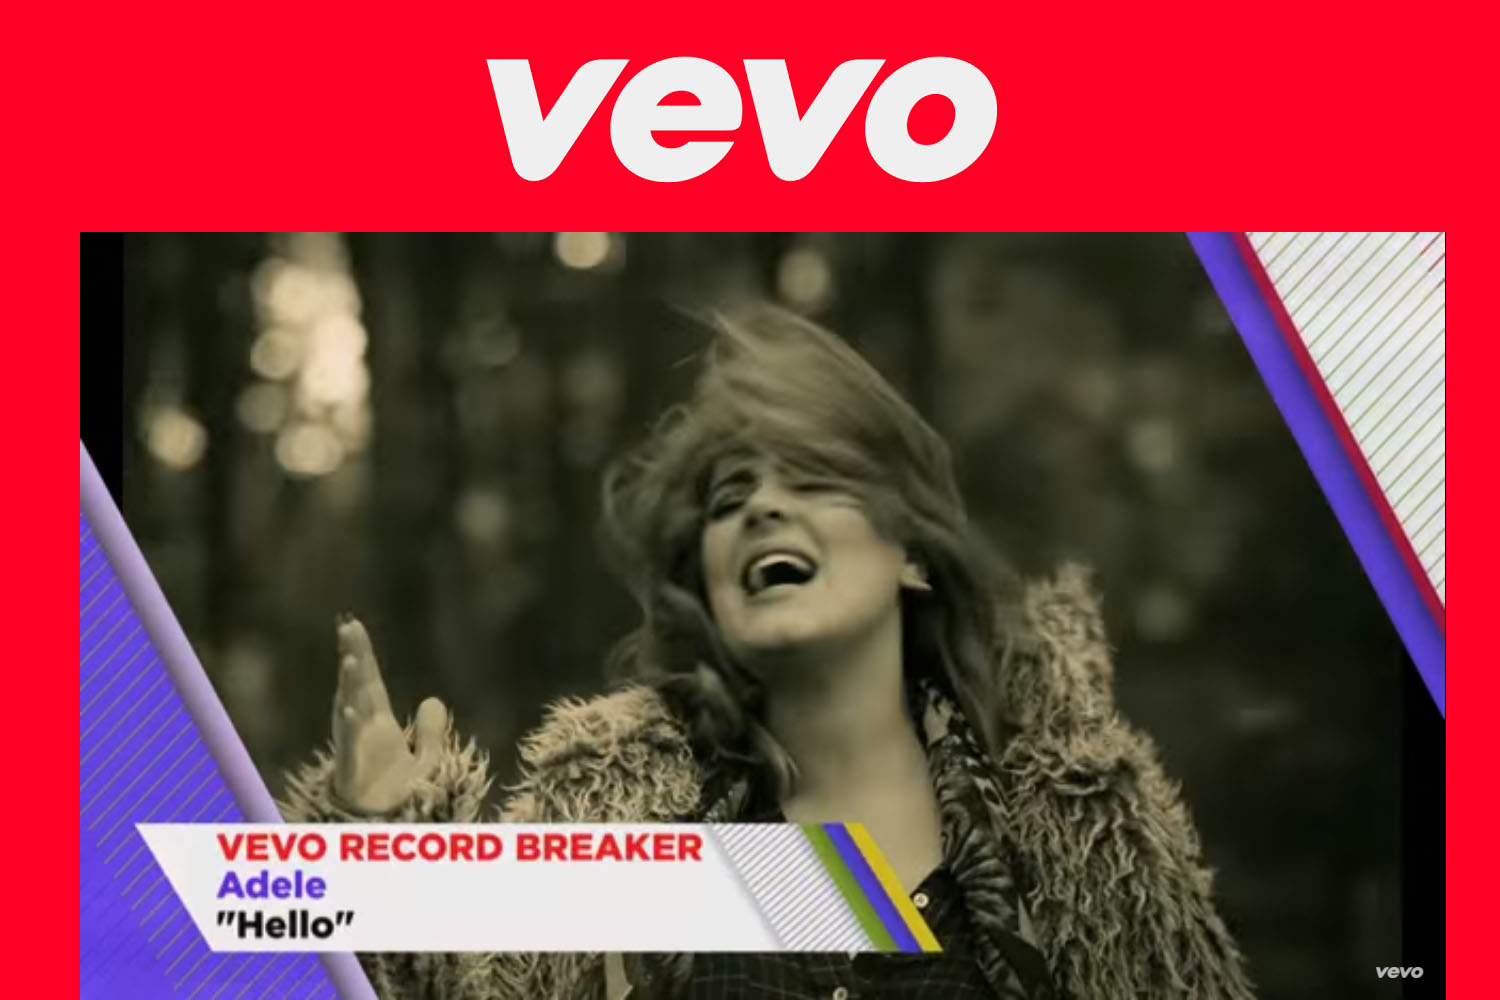 Song Breaks Vevo Records With 27M Views In A Day